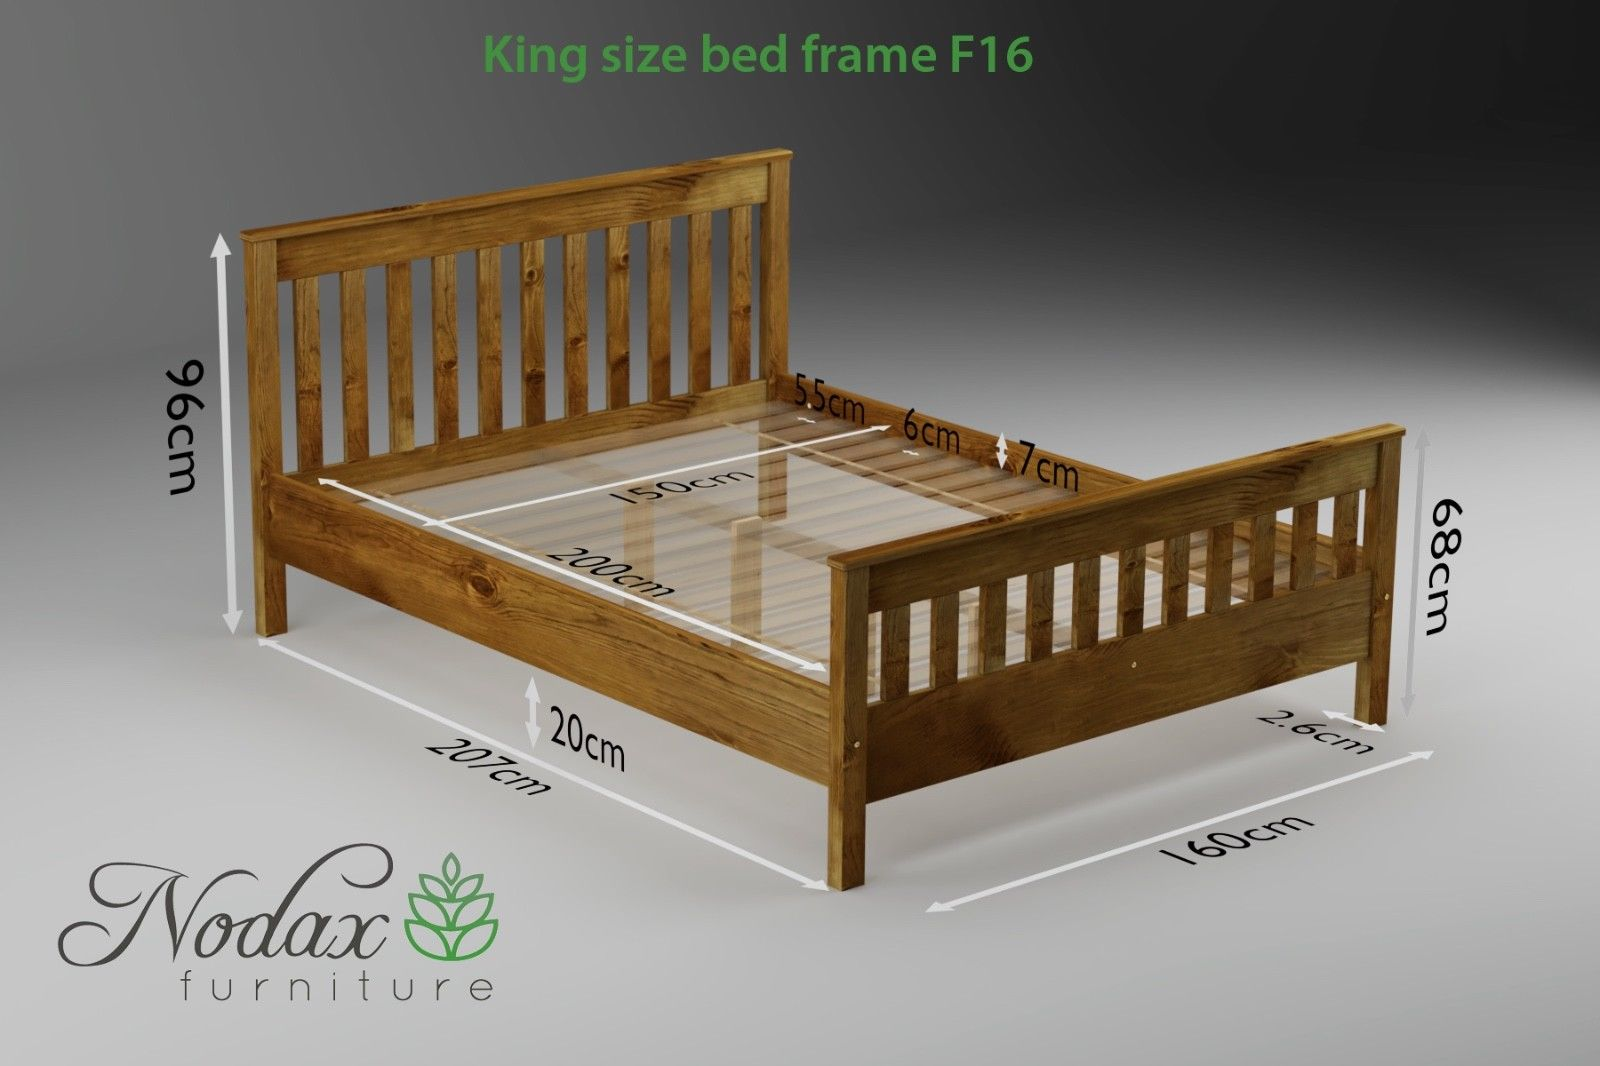 King Size Bed Frame F16 5ft Uk Size With High Footboard